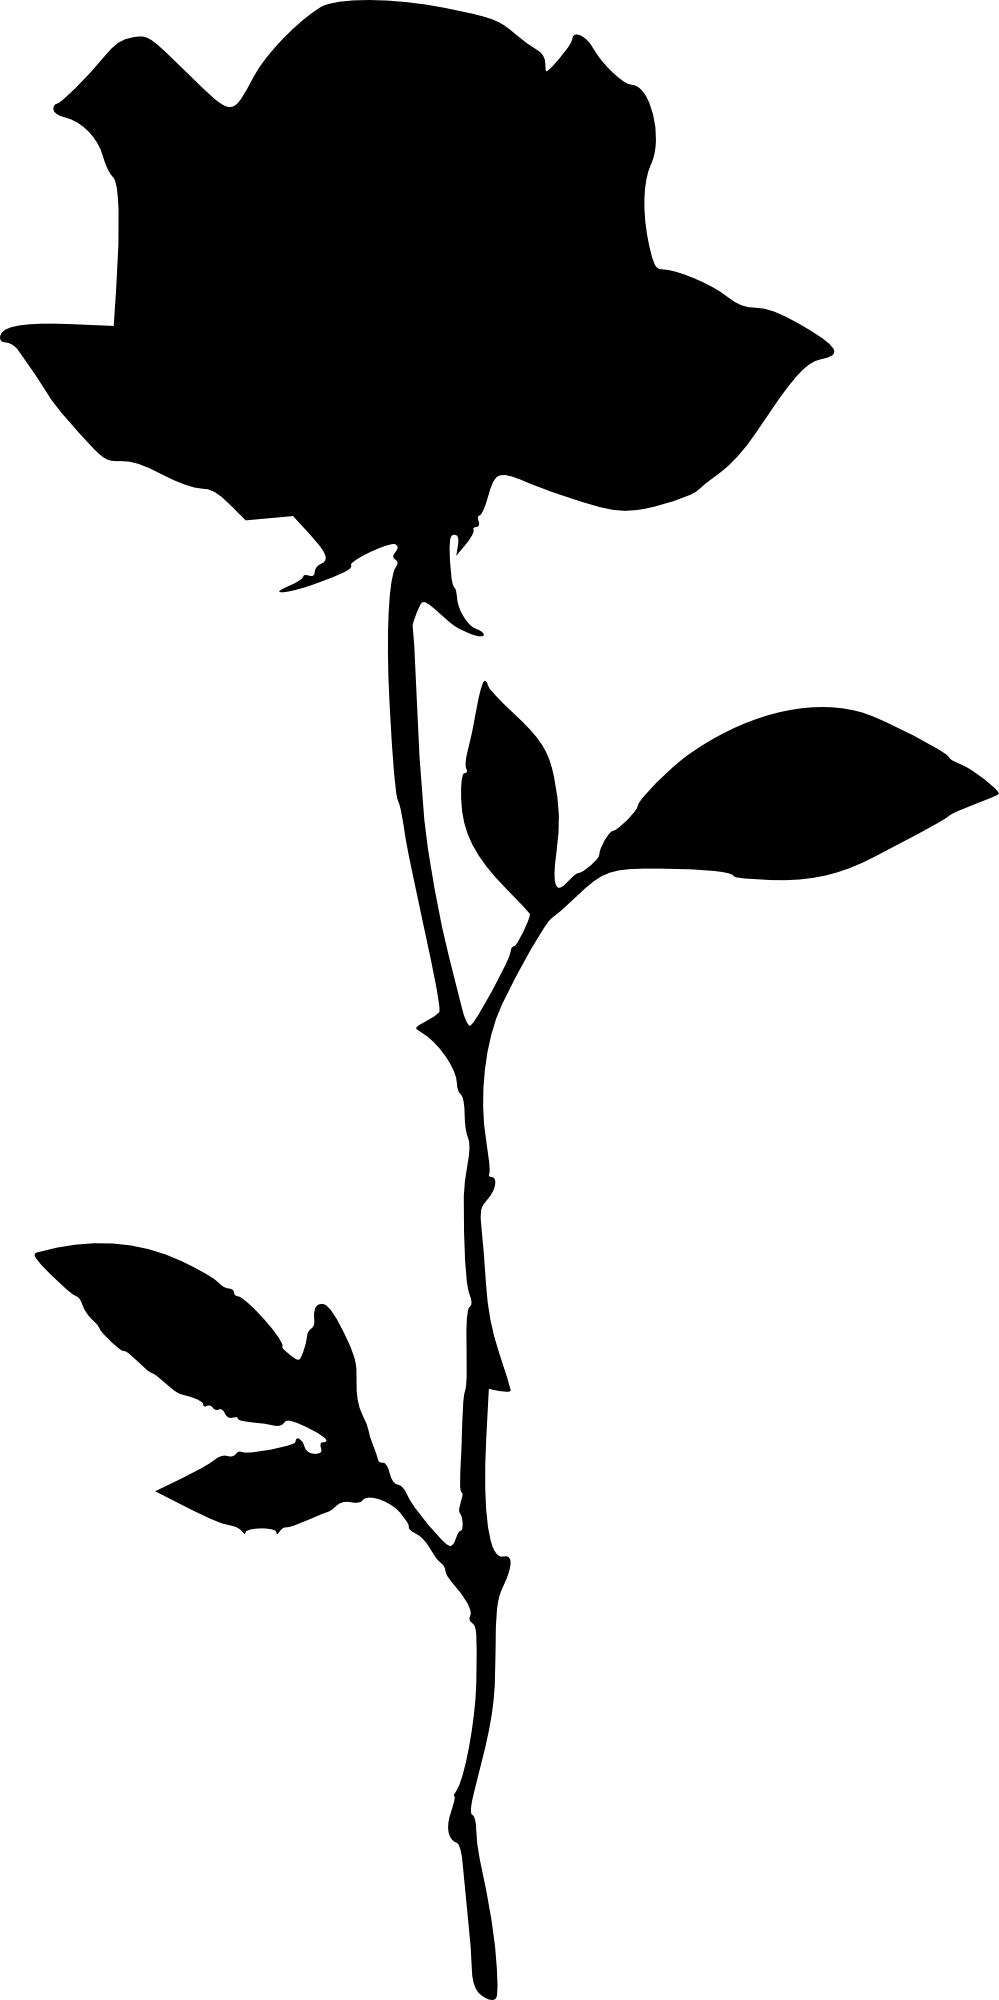 17 Rose Silhouette (PNG Transparent).